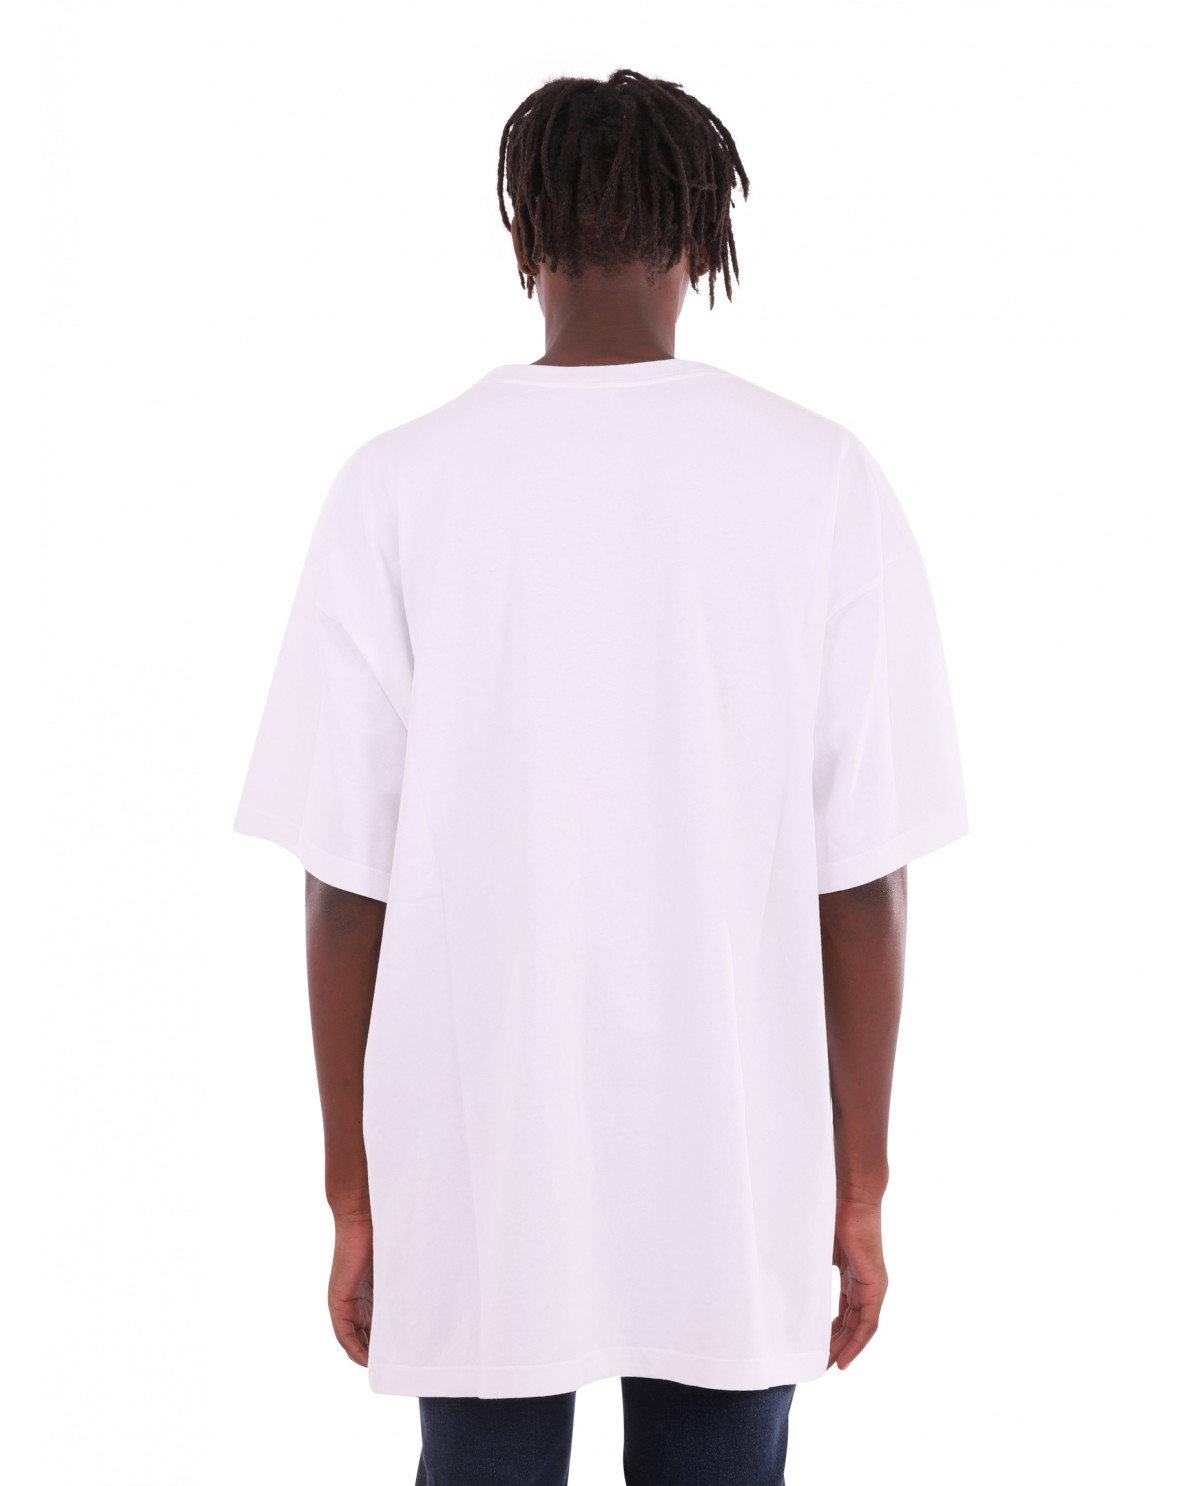 Comme des Garcons Play black tee